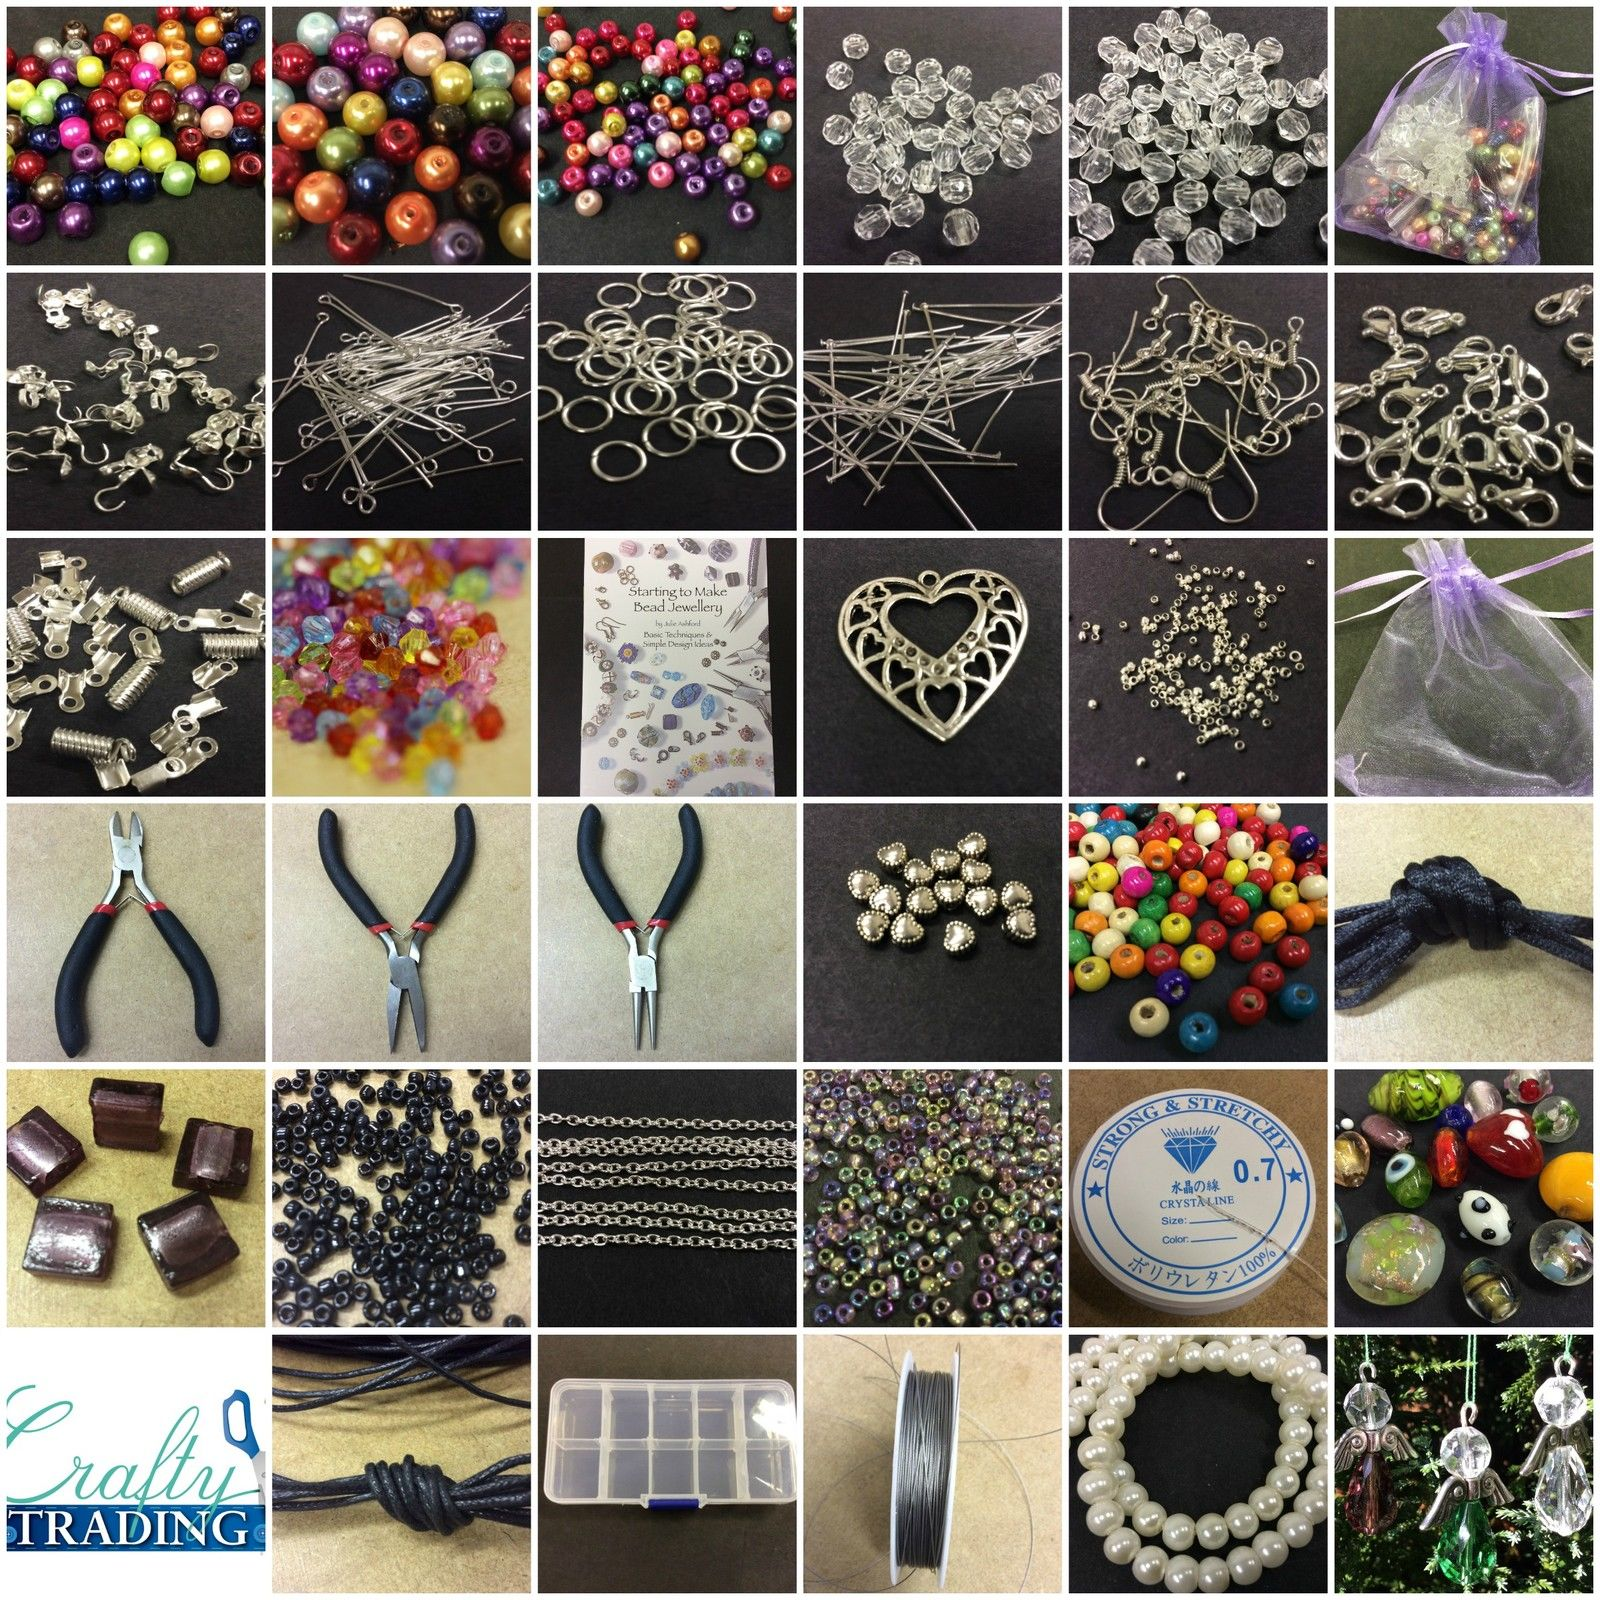 Large Jewellery Making Starter Kit 800+ Beads Tools,Findings,Box FREE ANGEL KIT Jewelry Making Up Accessories  Lobster Clasp